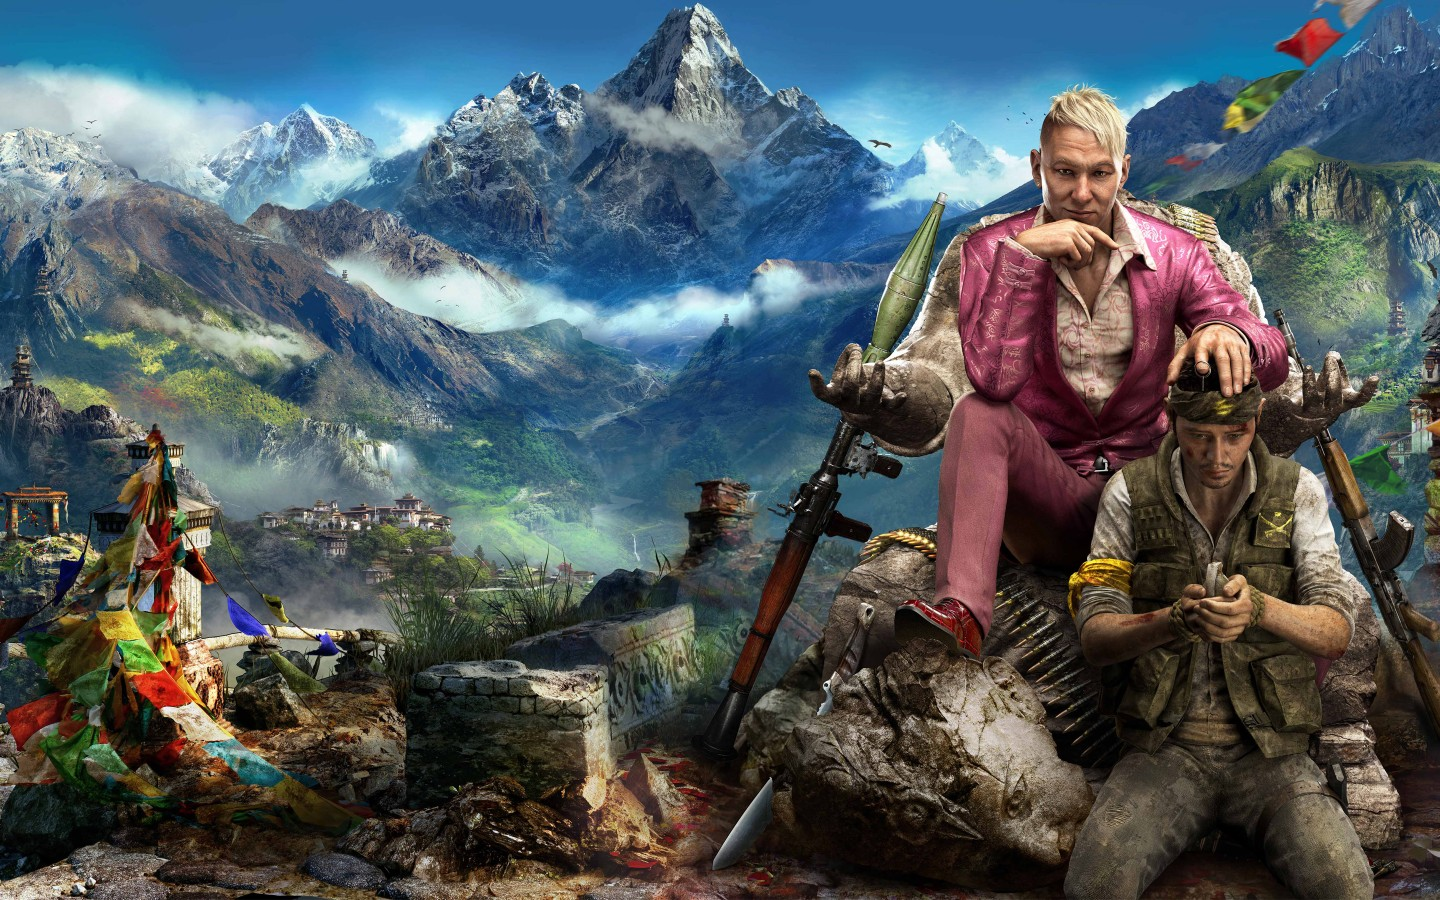 Hd Abstract Wallpapers For Iphone 5 Far Cry 4 New Game Wallpapers Hd Wallpapers Id 13589